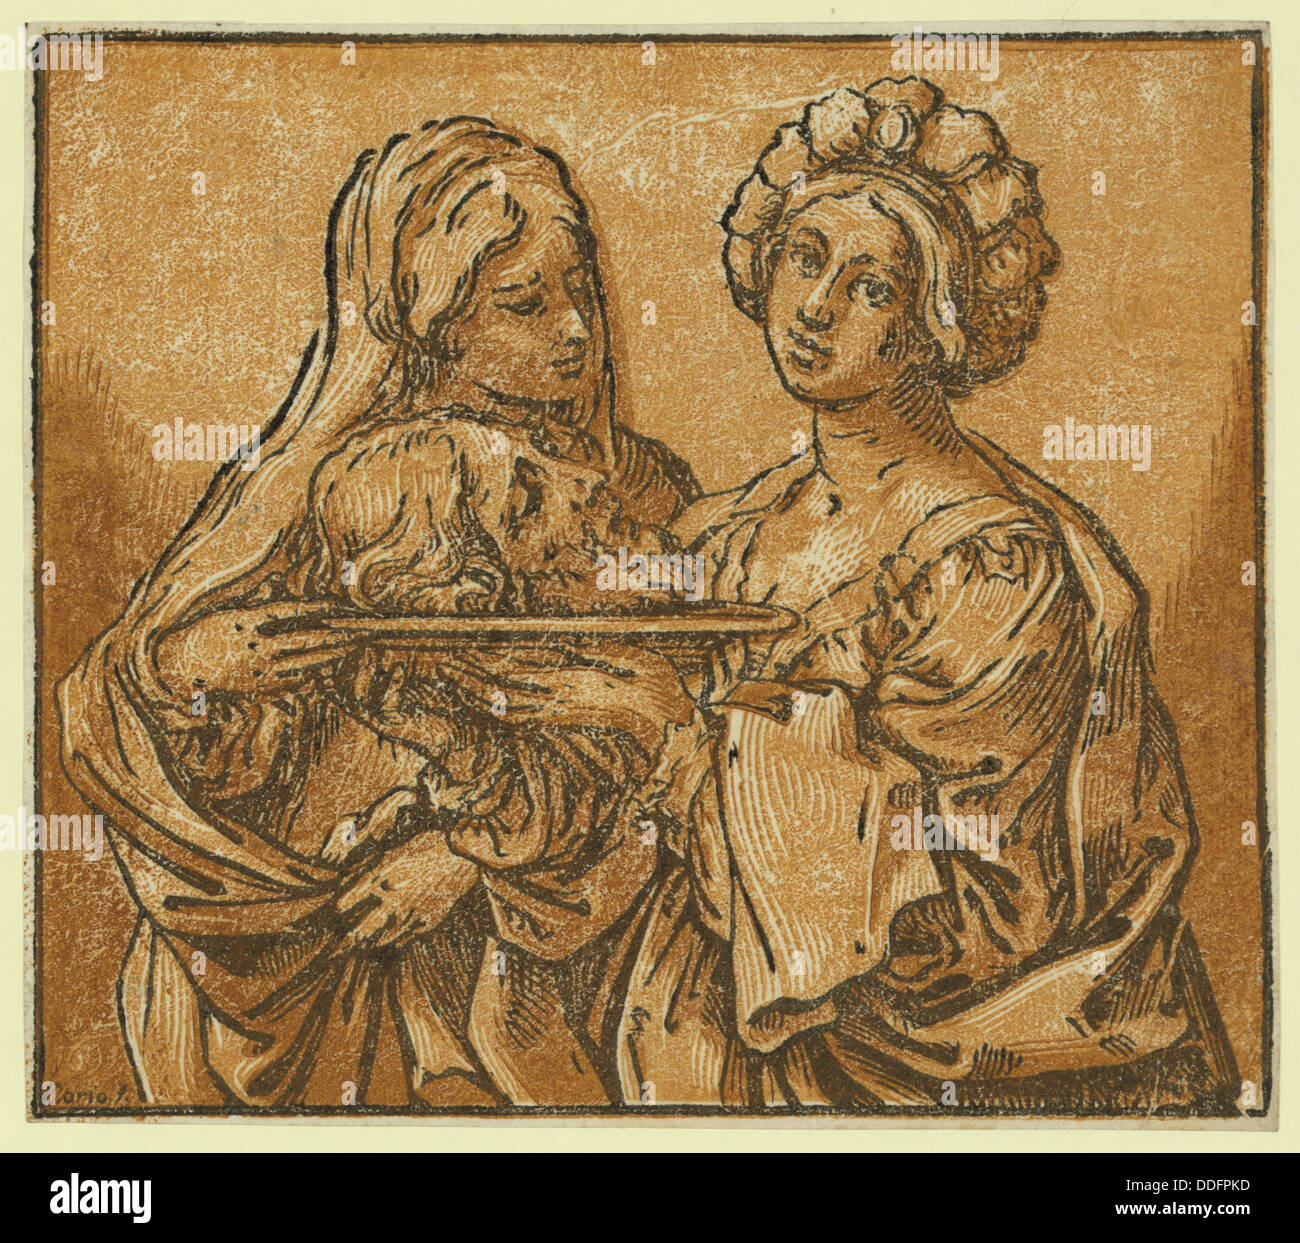 Herodiade, Coriolano, Bartolomeo, approximately 1599-approximately 1676 - Stock Image